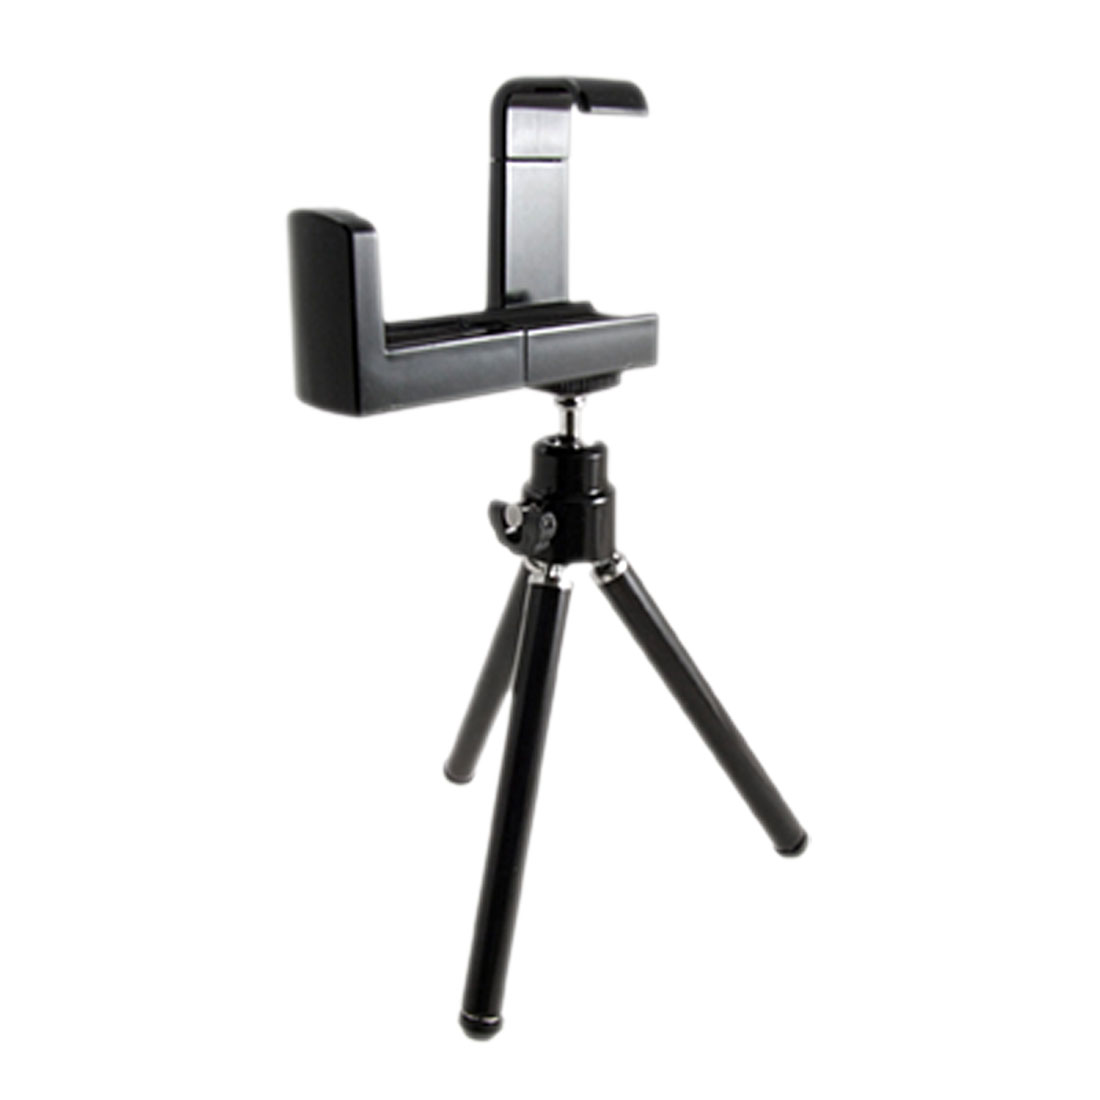 Portable Adjustable Mini Digital Camera Cell Phone Support Holder Tripod Stand